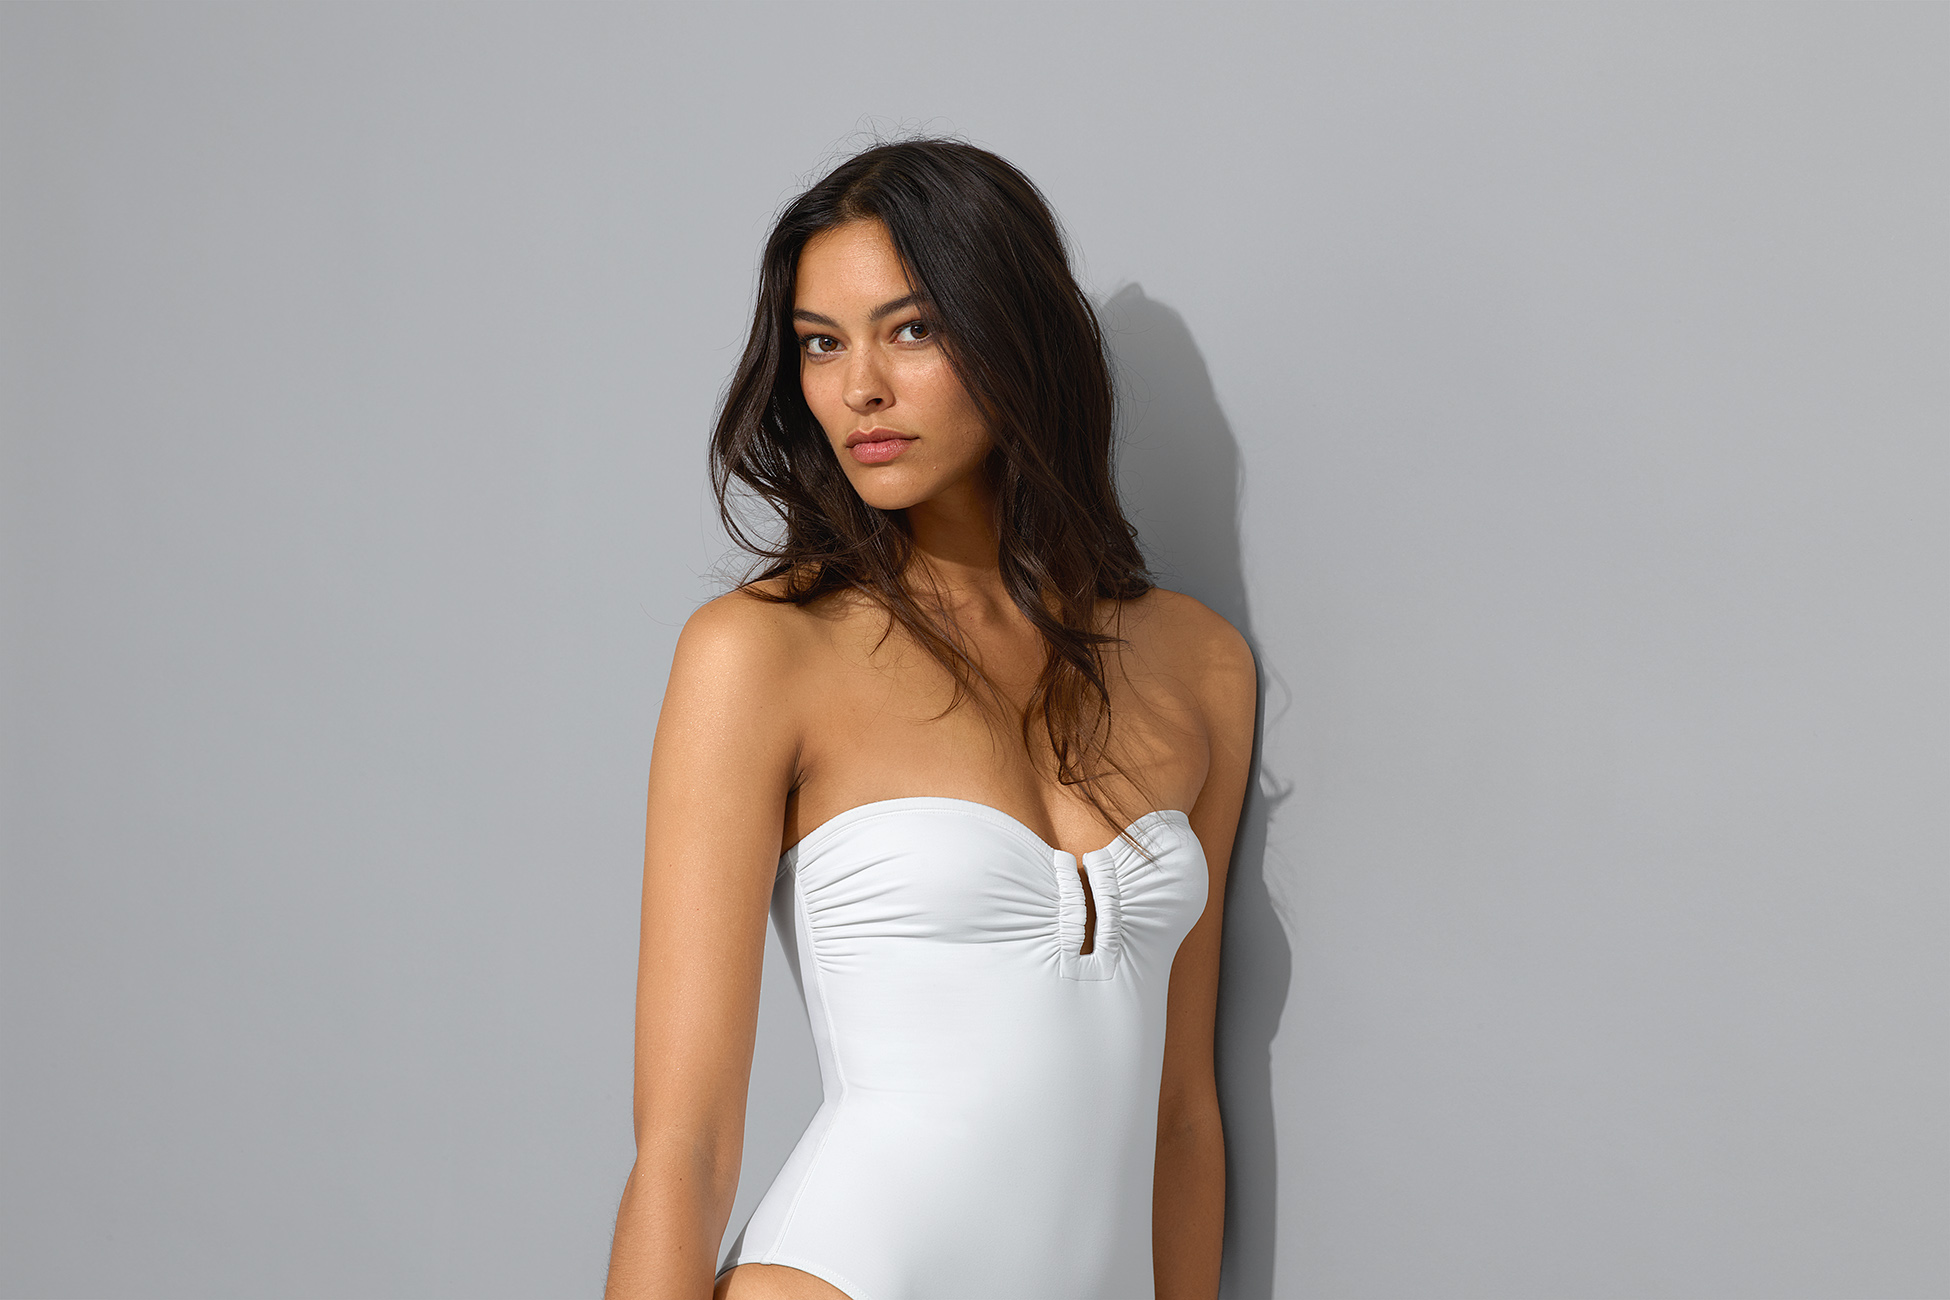 Cassiopée Bustier one-piece standard view 2